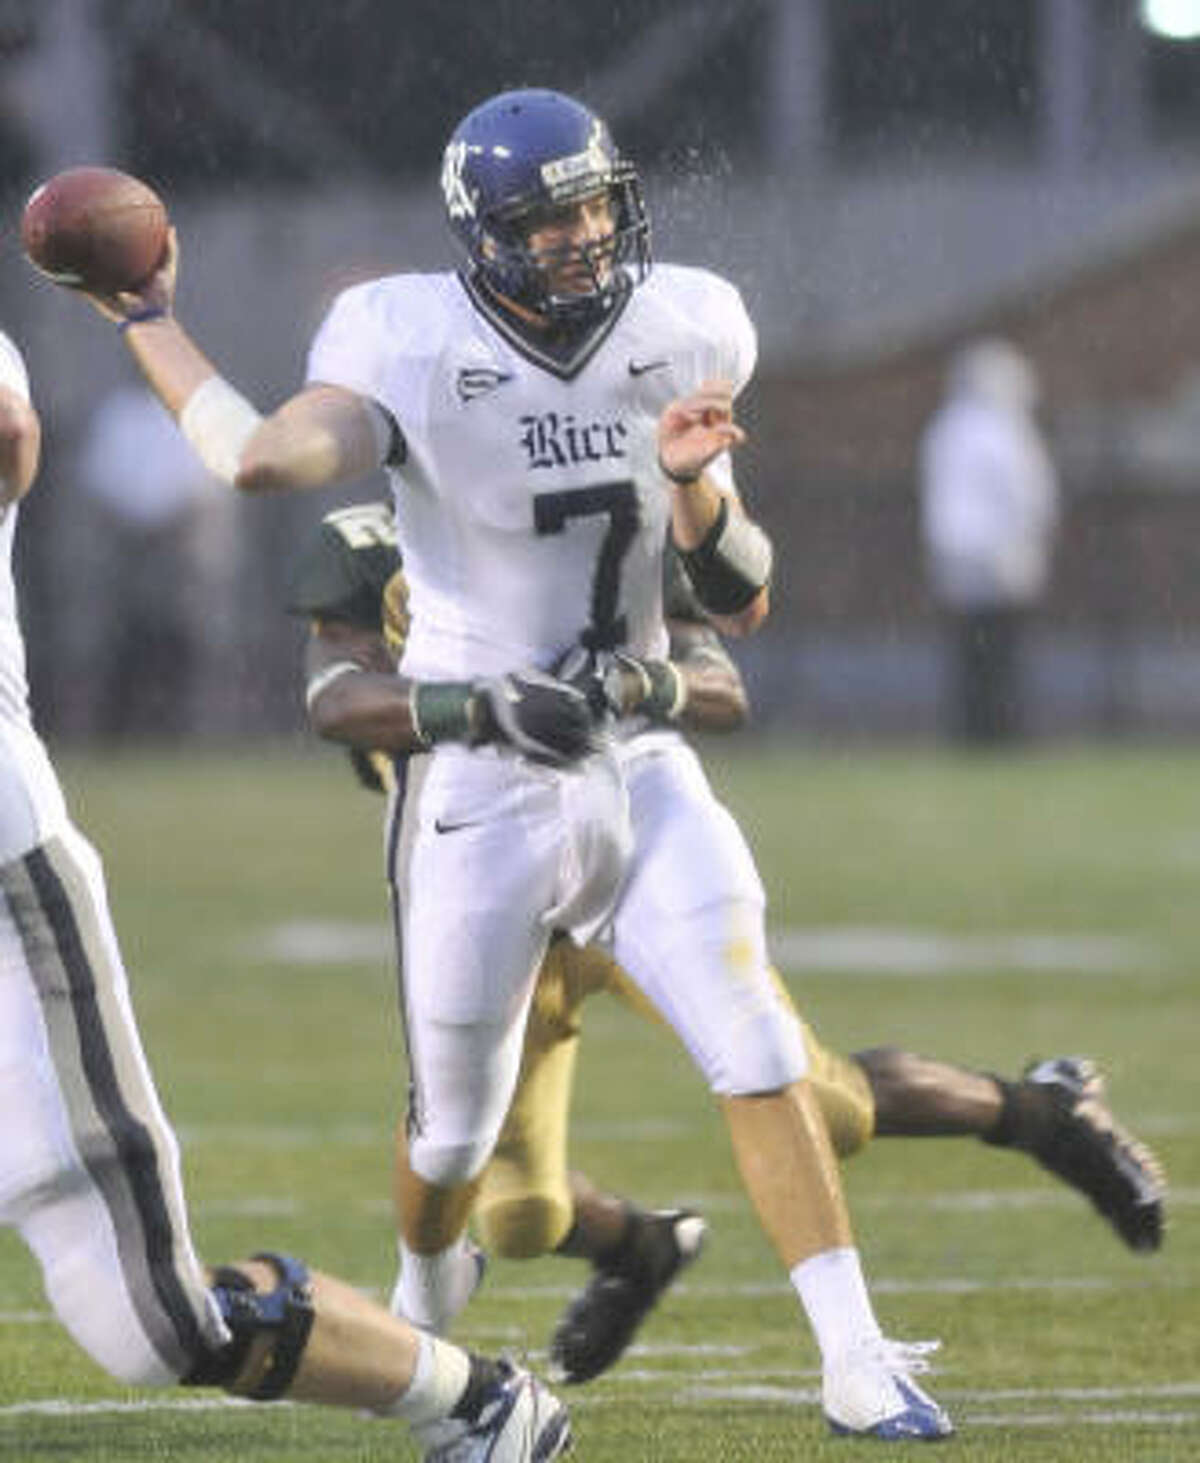 Rice quarterback Nick Fanuzzi is hit from behind by UAB's Robert Calhoun as he releases the ball for an incomplete pass.